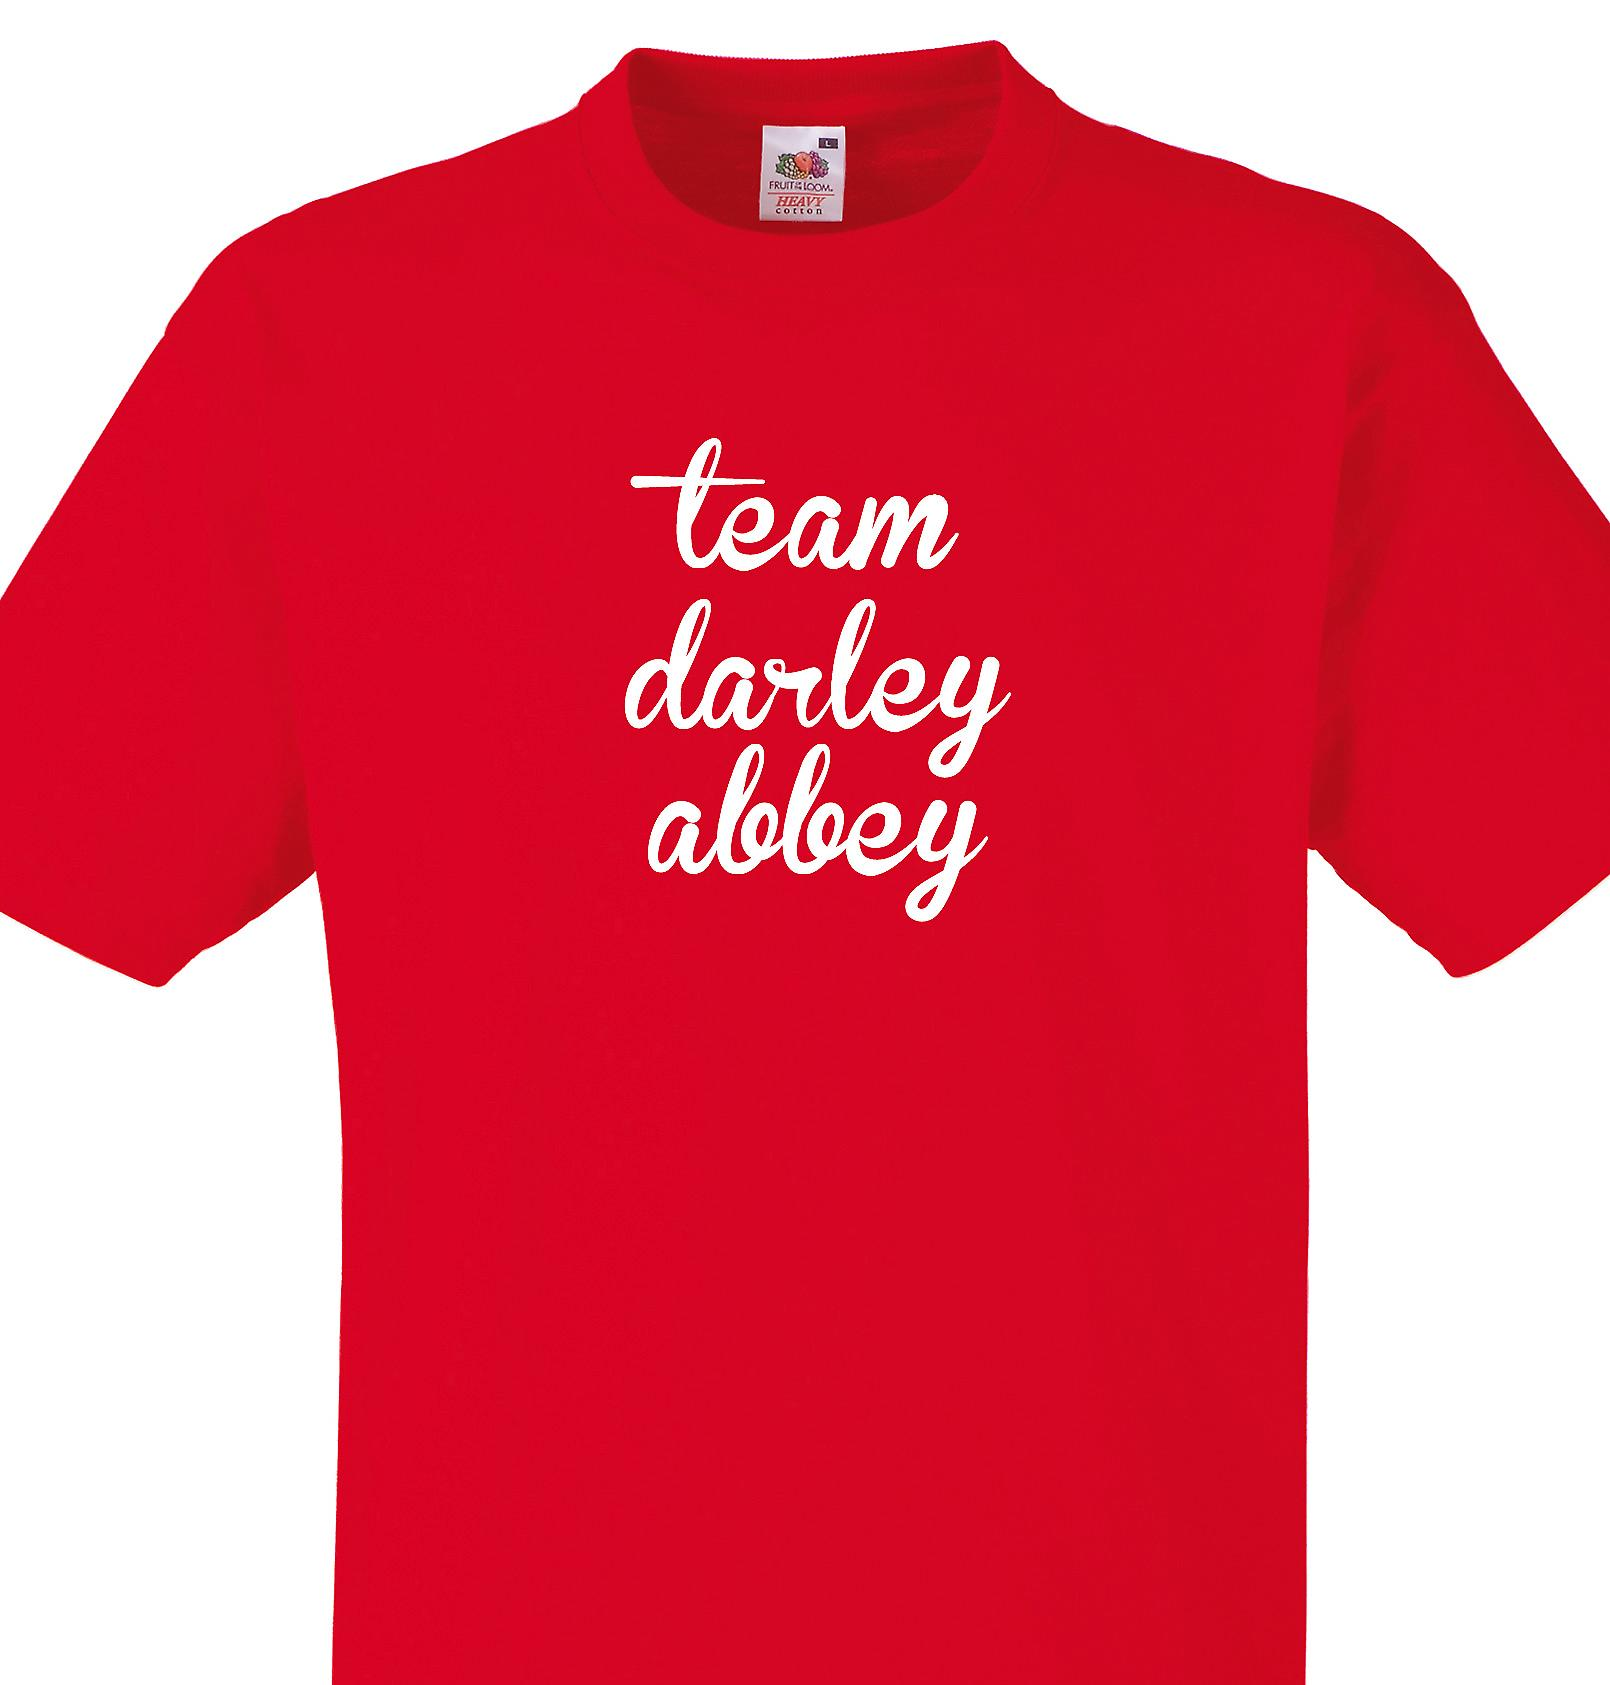 Team Darley abbey Red T shirt